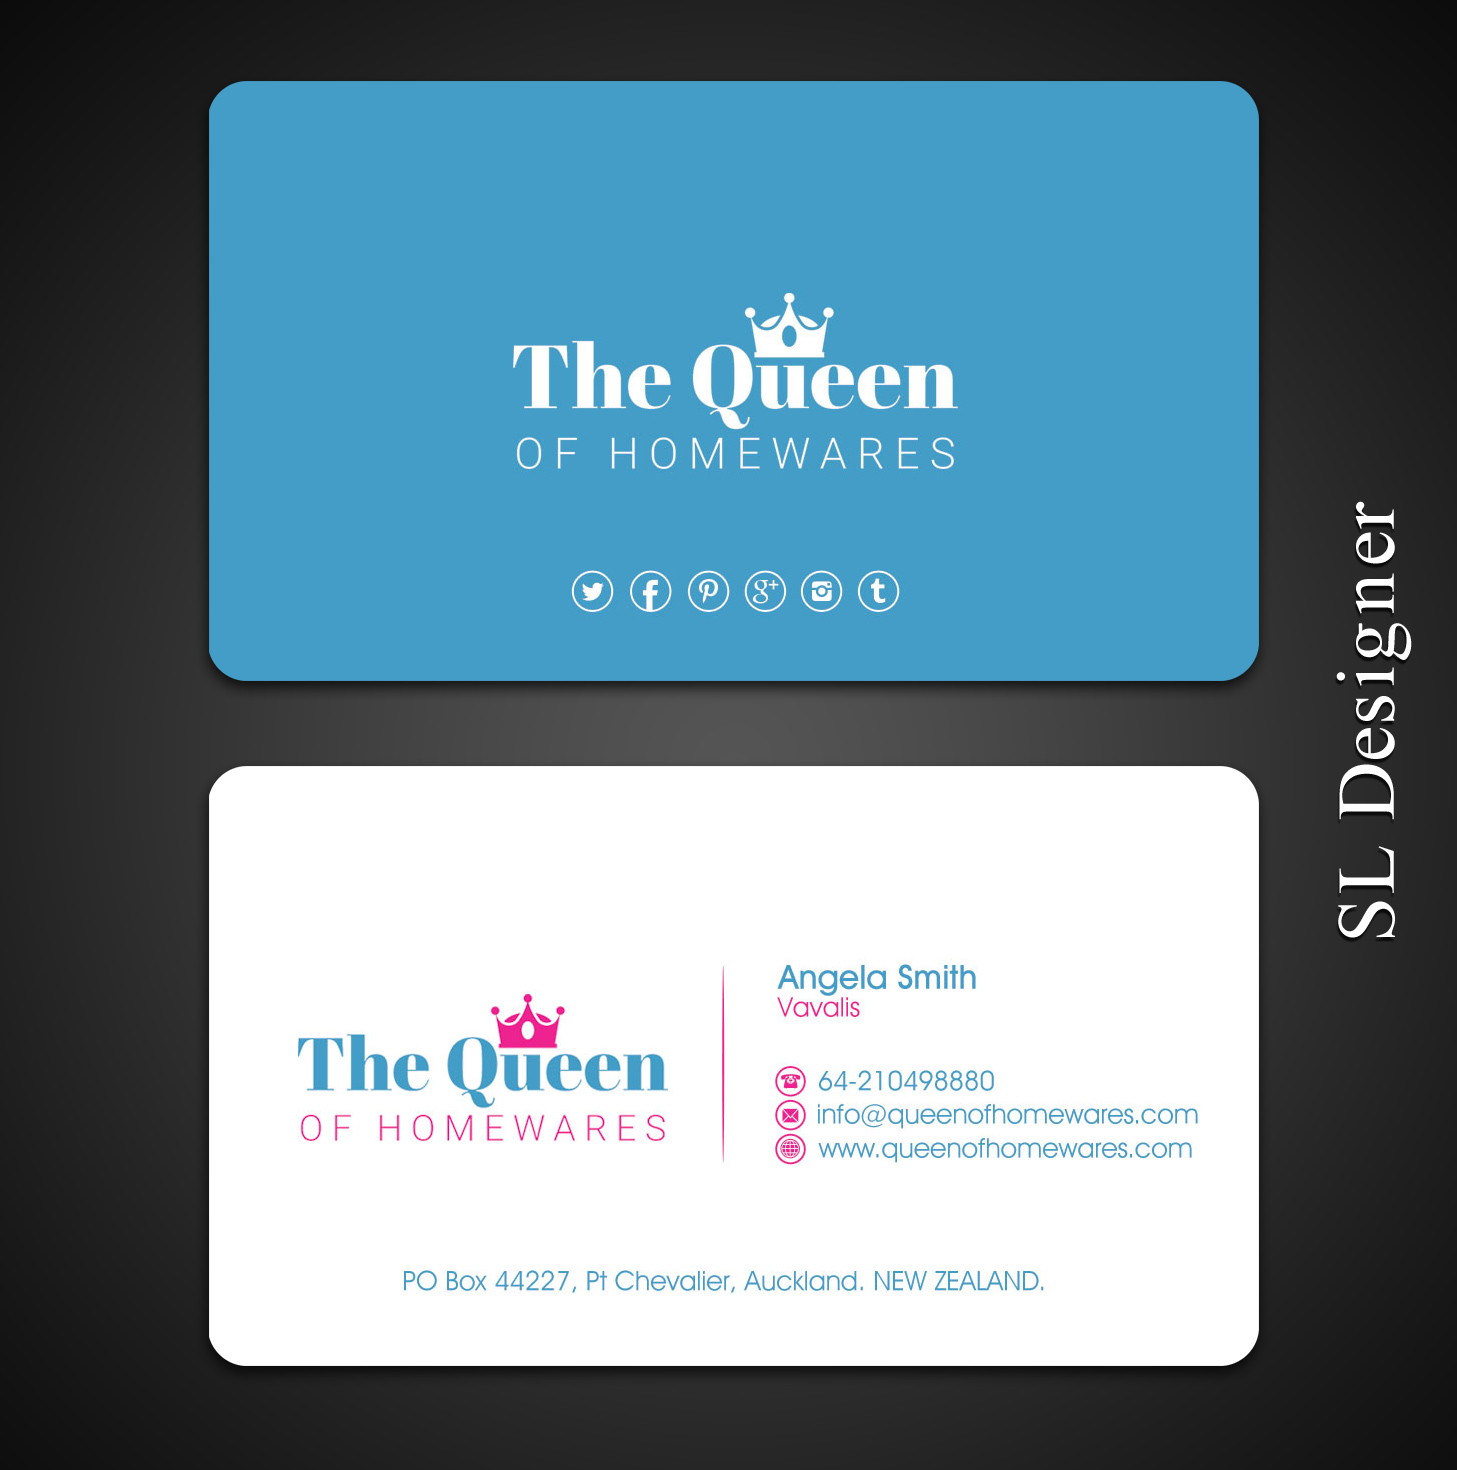 Upmarket bold business business card design for queen of homewares business card design by sl designer for queen of homewares design 17689347 reheart Image collections